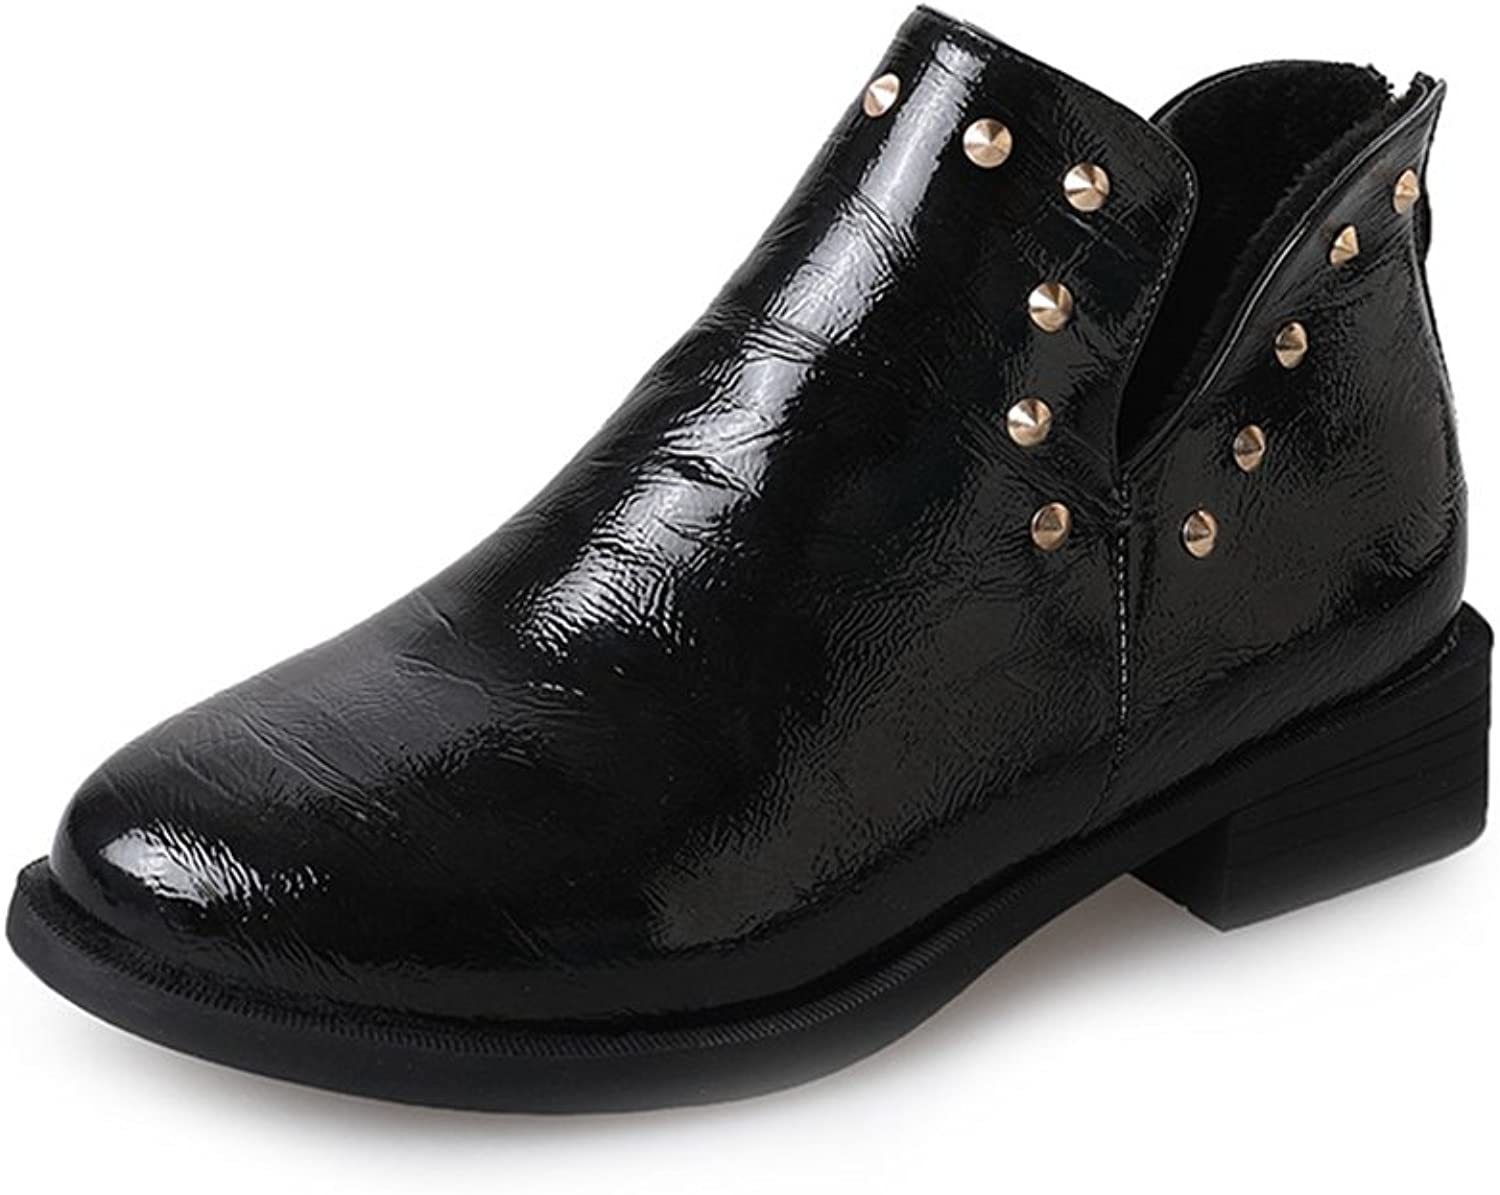 Btrada Winter Womens Rivet Motorcycle Ankle Boots shoes Low Square Heel Slip-On Chelsea Boots